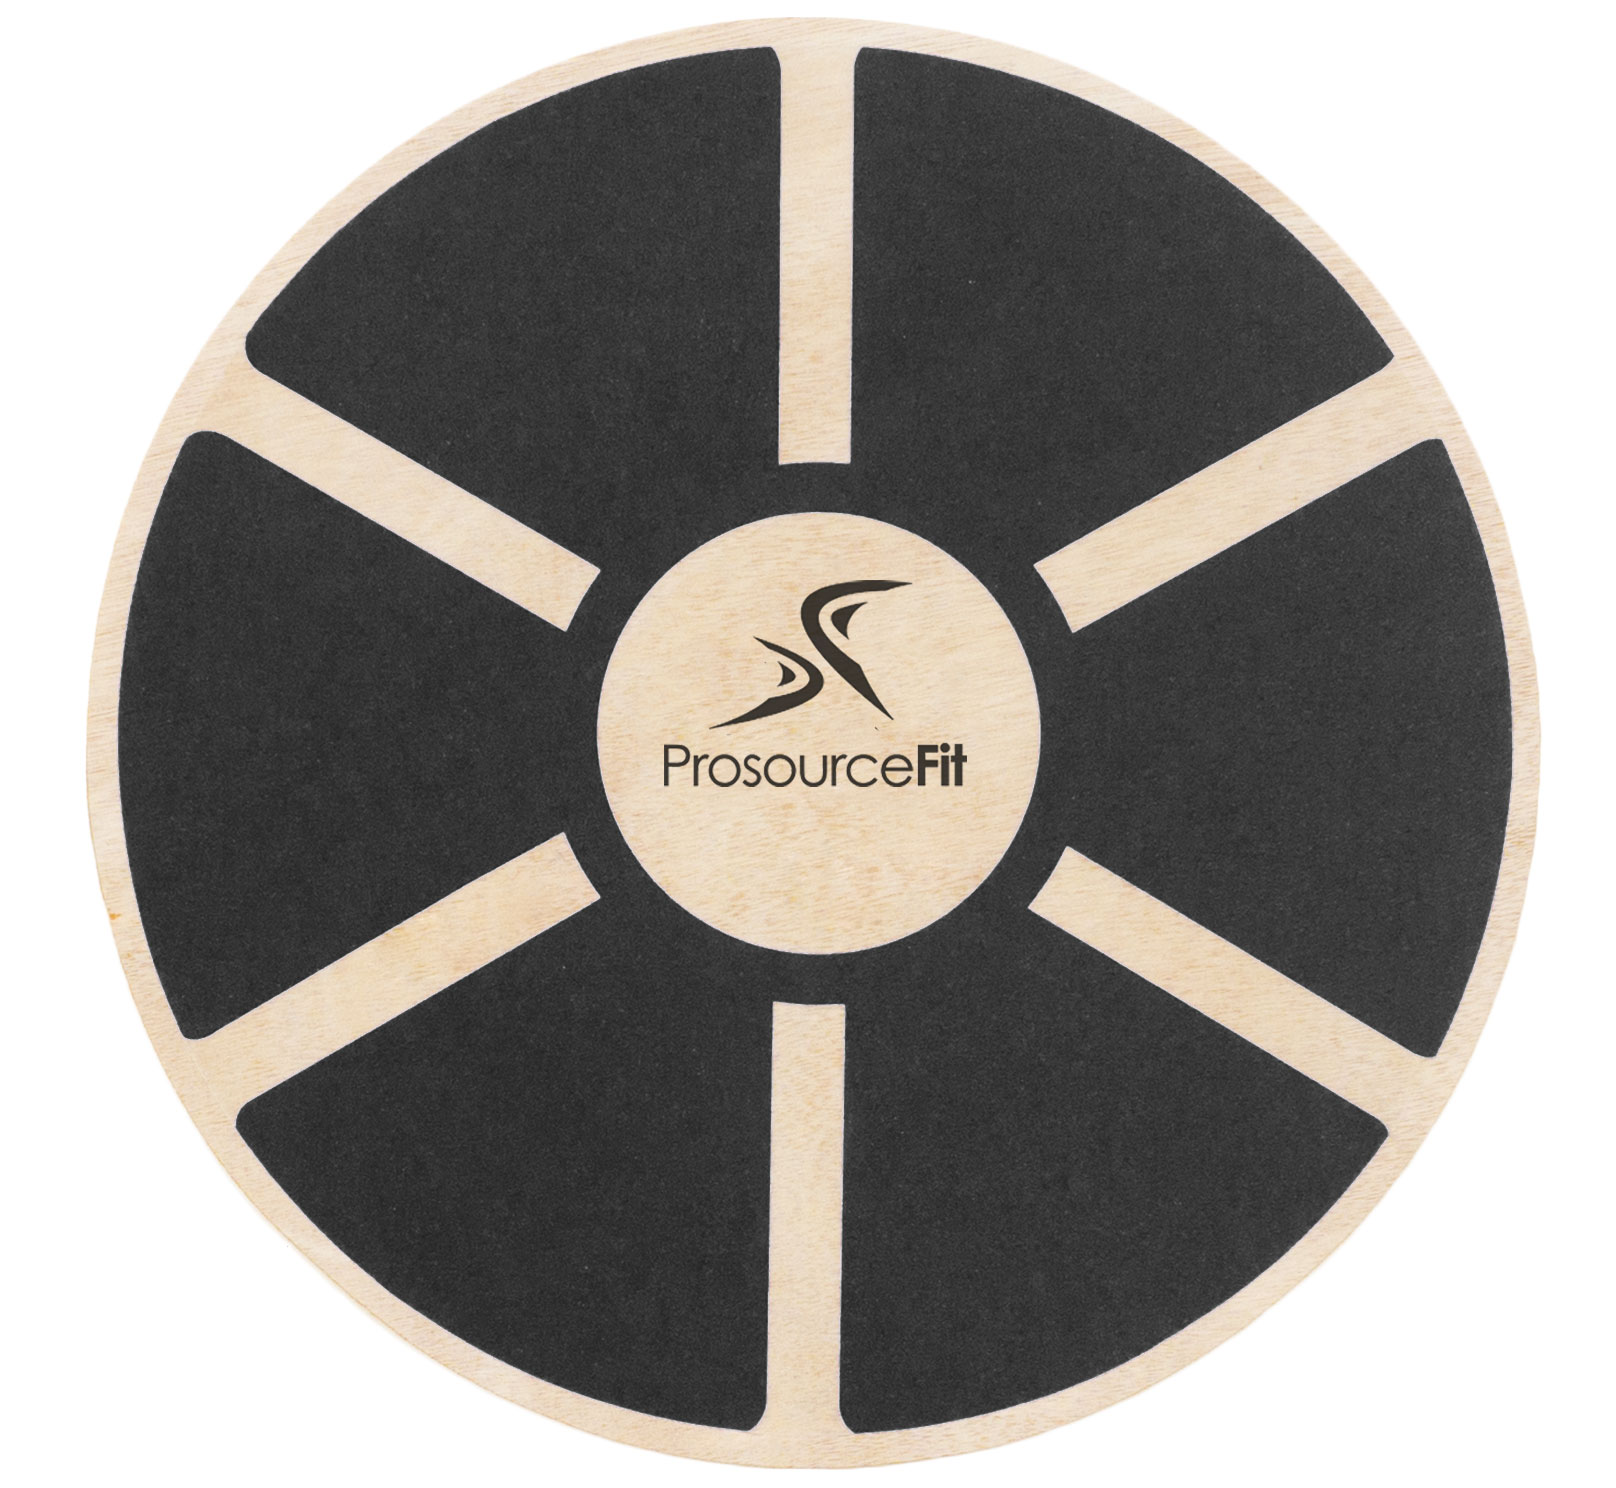 ProsourceFit Wooden Balance Board Non-Slip Wobble Core Trainer 15.75in (40cm) Diameter with 360 Rotation for Stability Training, Full Body Exercise, Physical Therapy (4 colors Available )